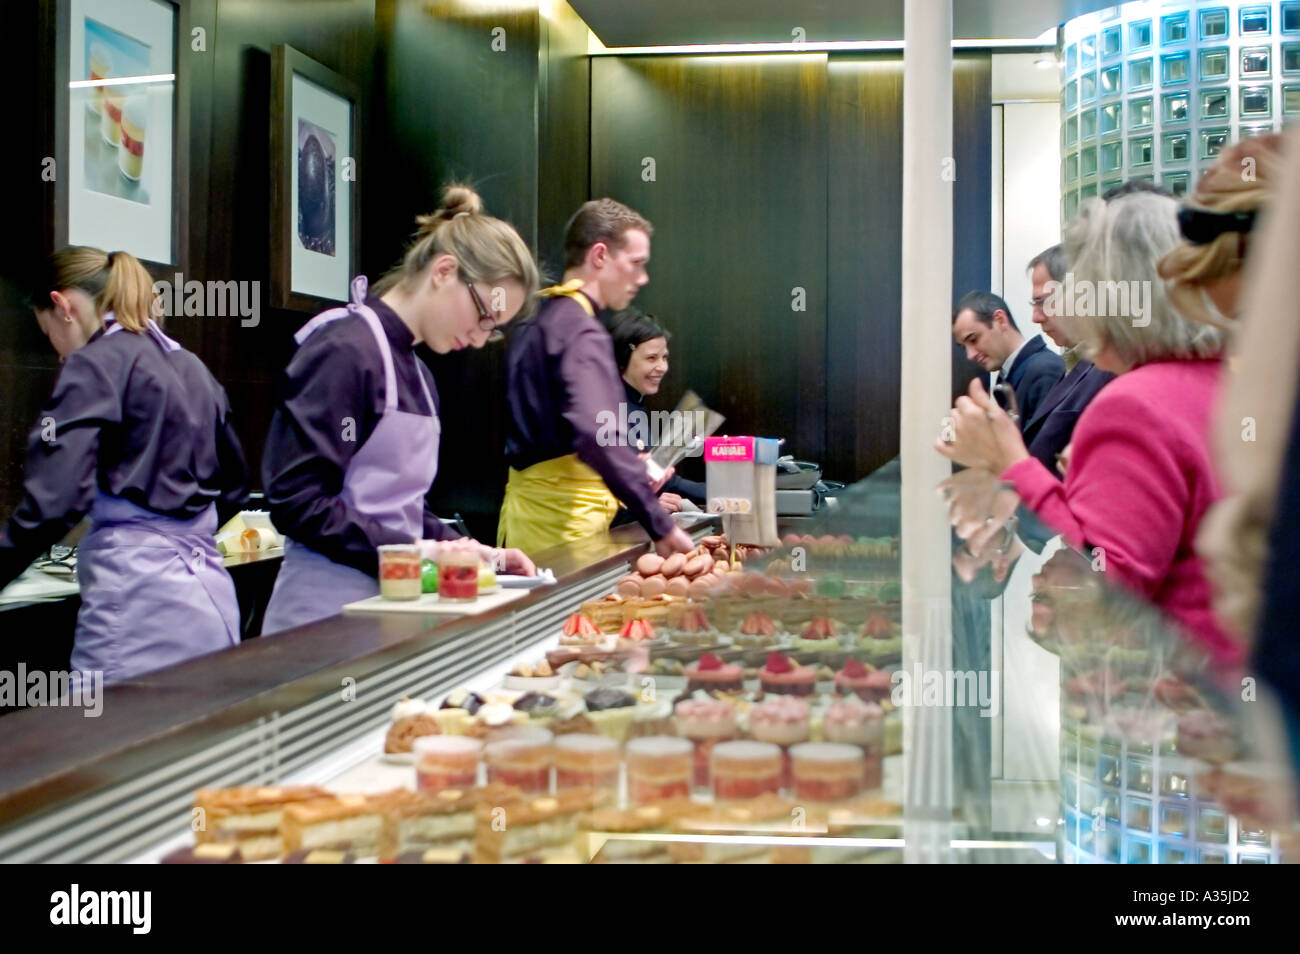 Paris France, Clerks Working in Food Store, Luxury Chocolate Shop 'pierre herme' French Cakes - Stock Image